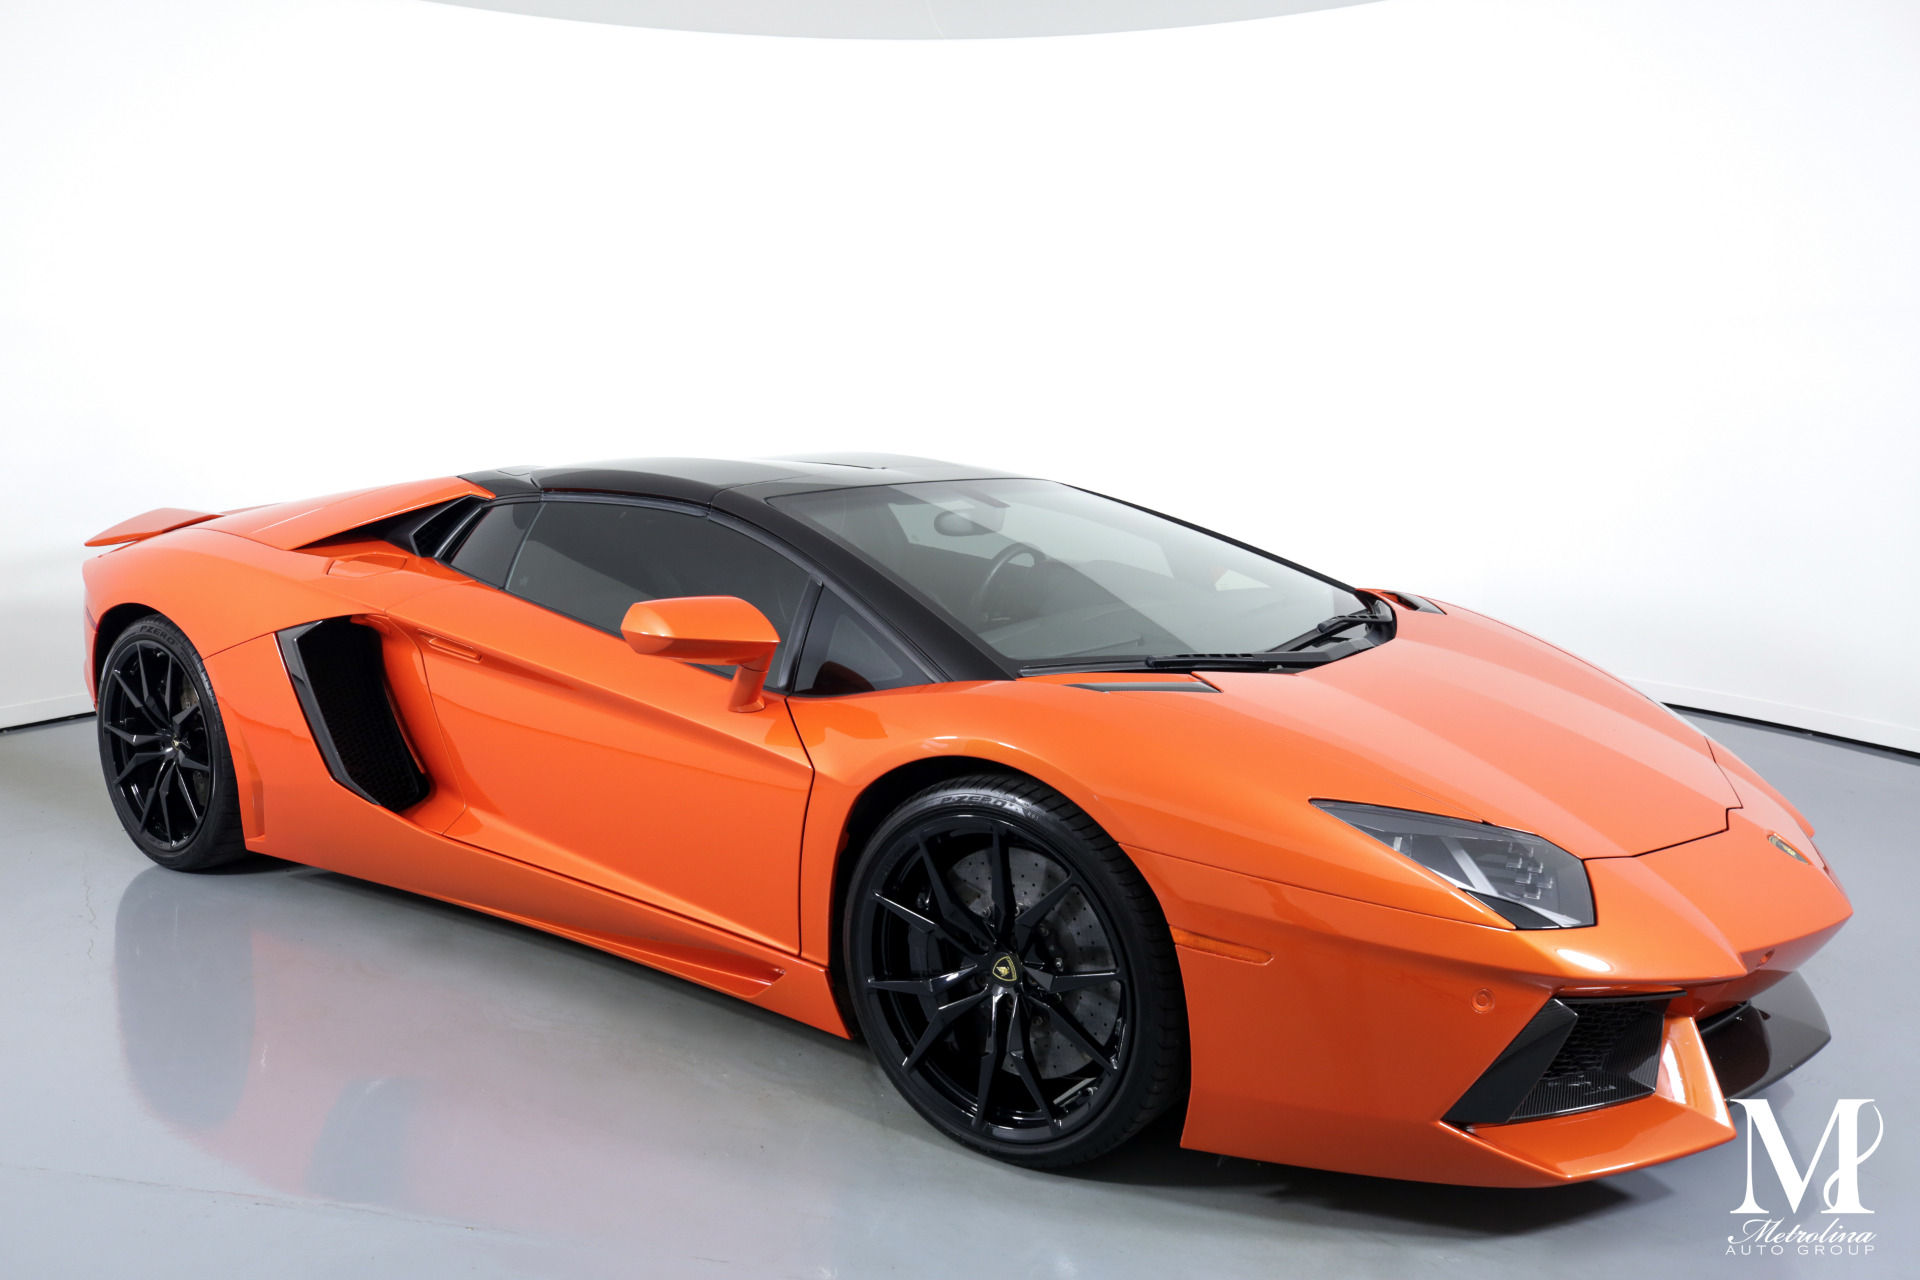 Used 2015 Lamborghini Aventador LP 700-4 for sale $399,996 at Metrolina Auto Group in Charlotte NC 28217 - 2